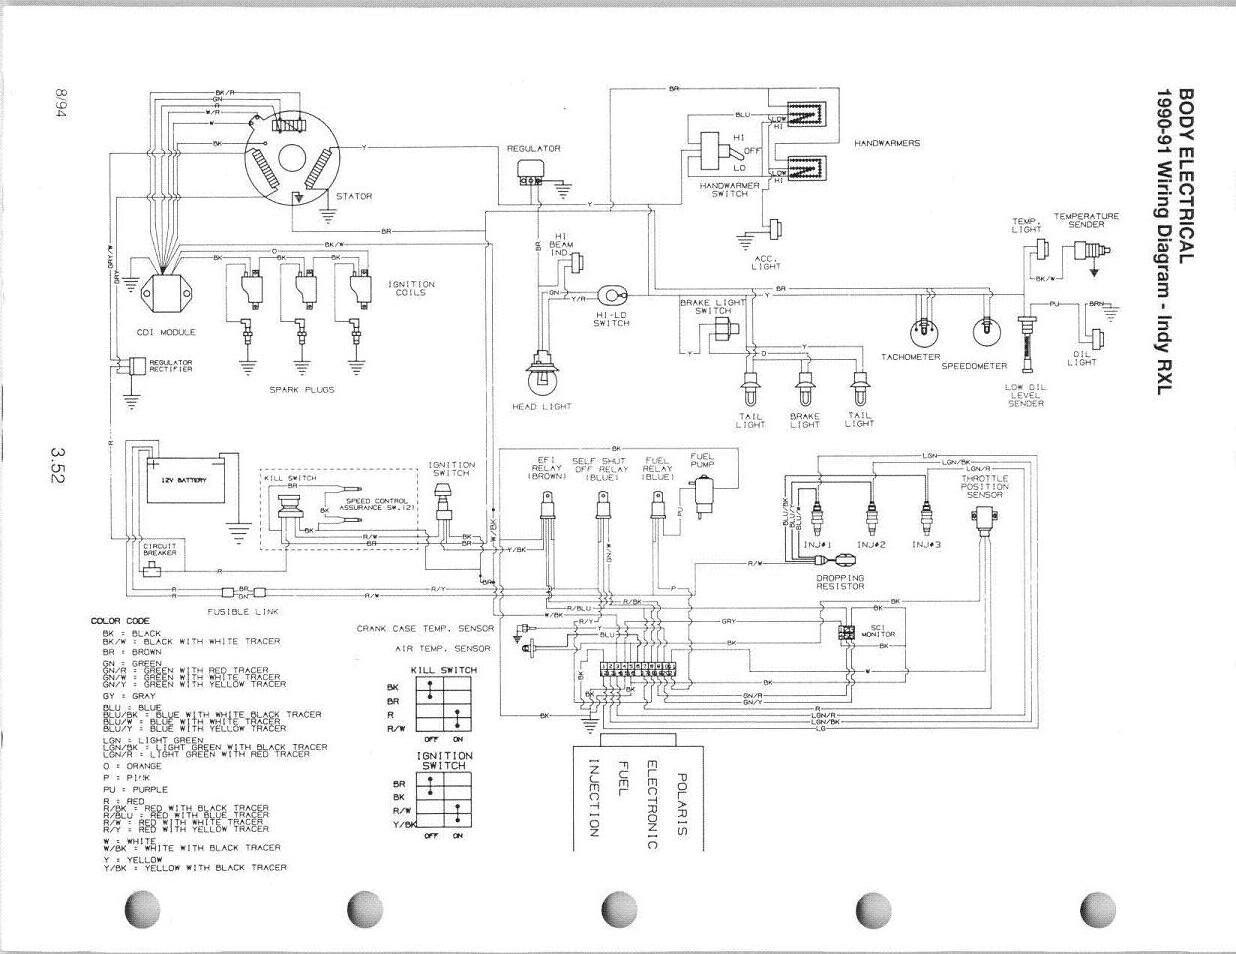 193235 fuel pump 201112554231109_18890 wiring diagram polaris sportsman 570 readingrat net 2000 polaris sportsman 500 wiring diagram pdf at webbmarketing.co